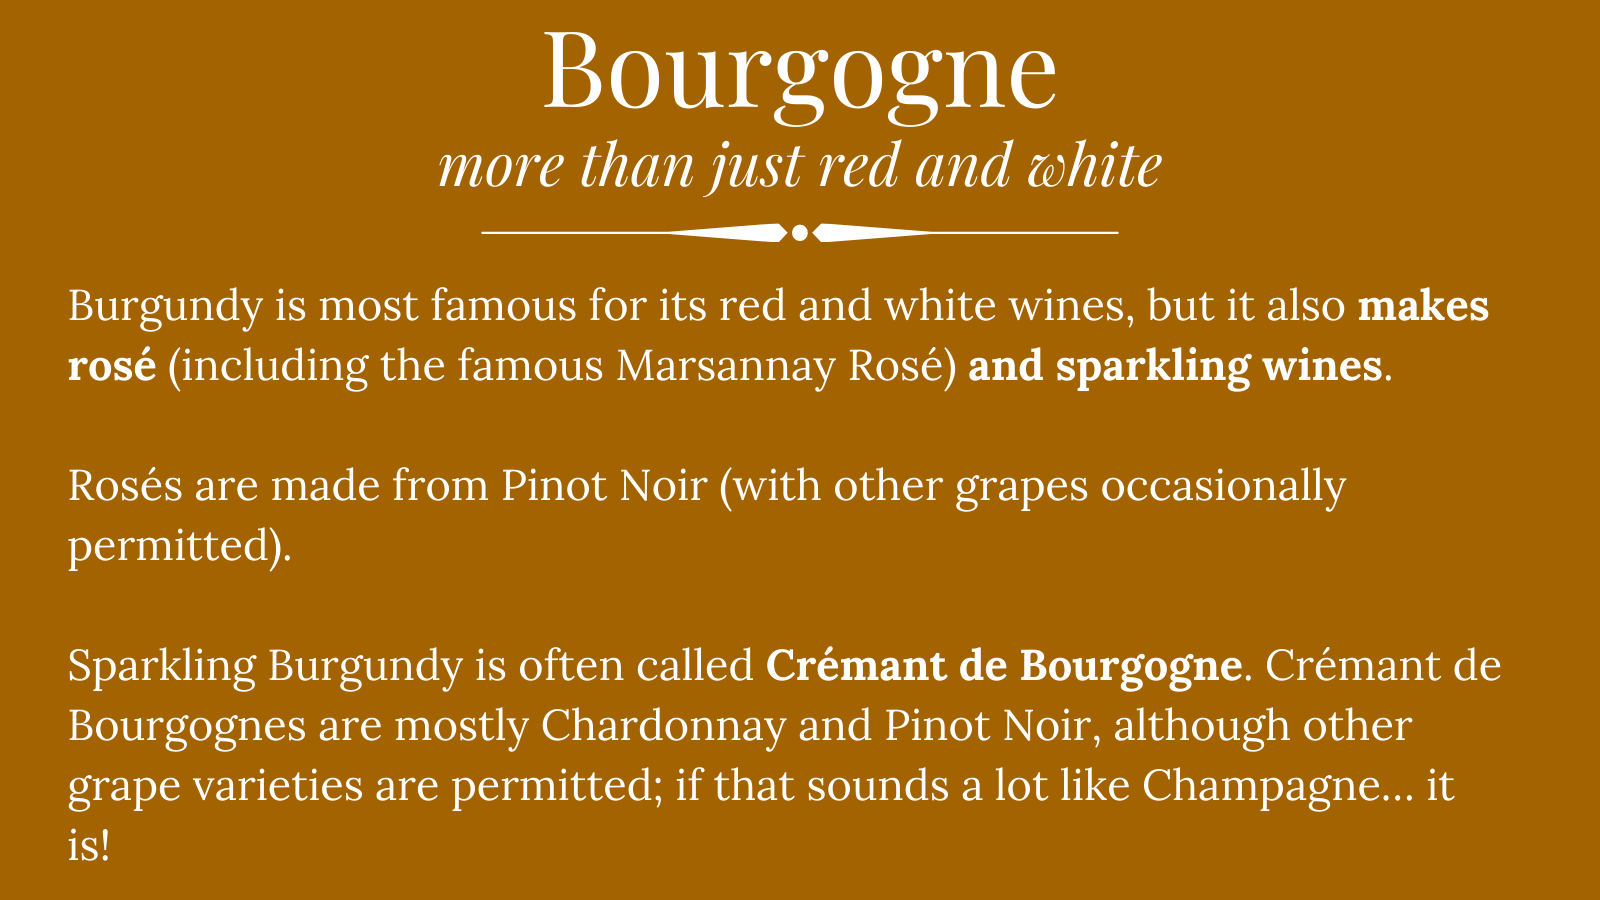 bourgogne wines: more than red and white wine